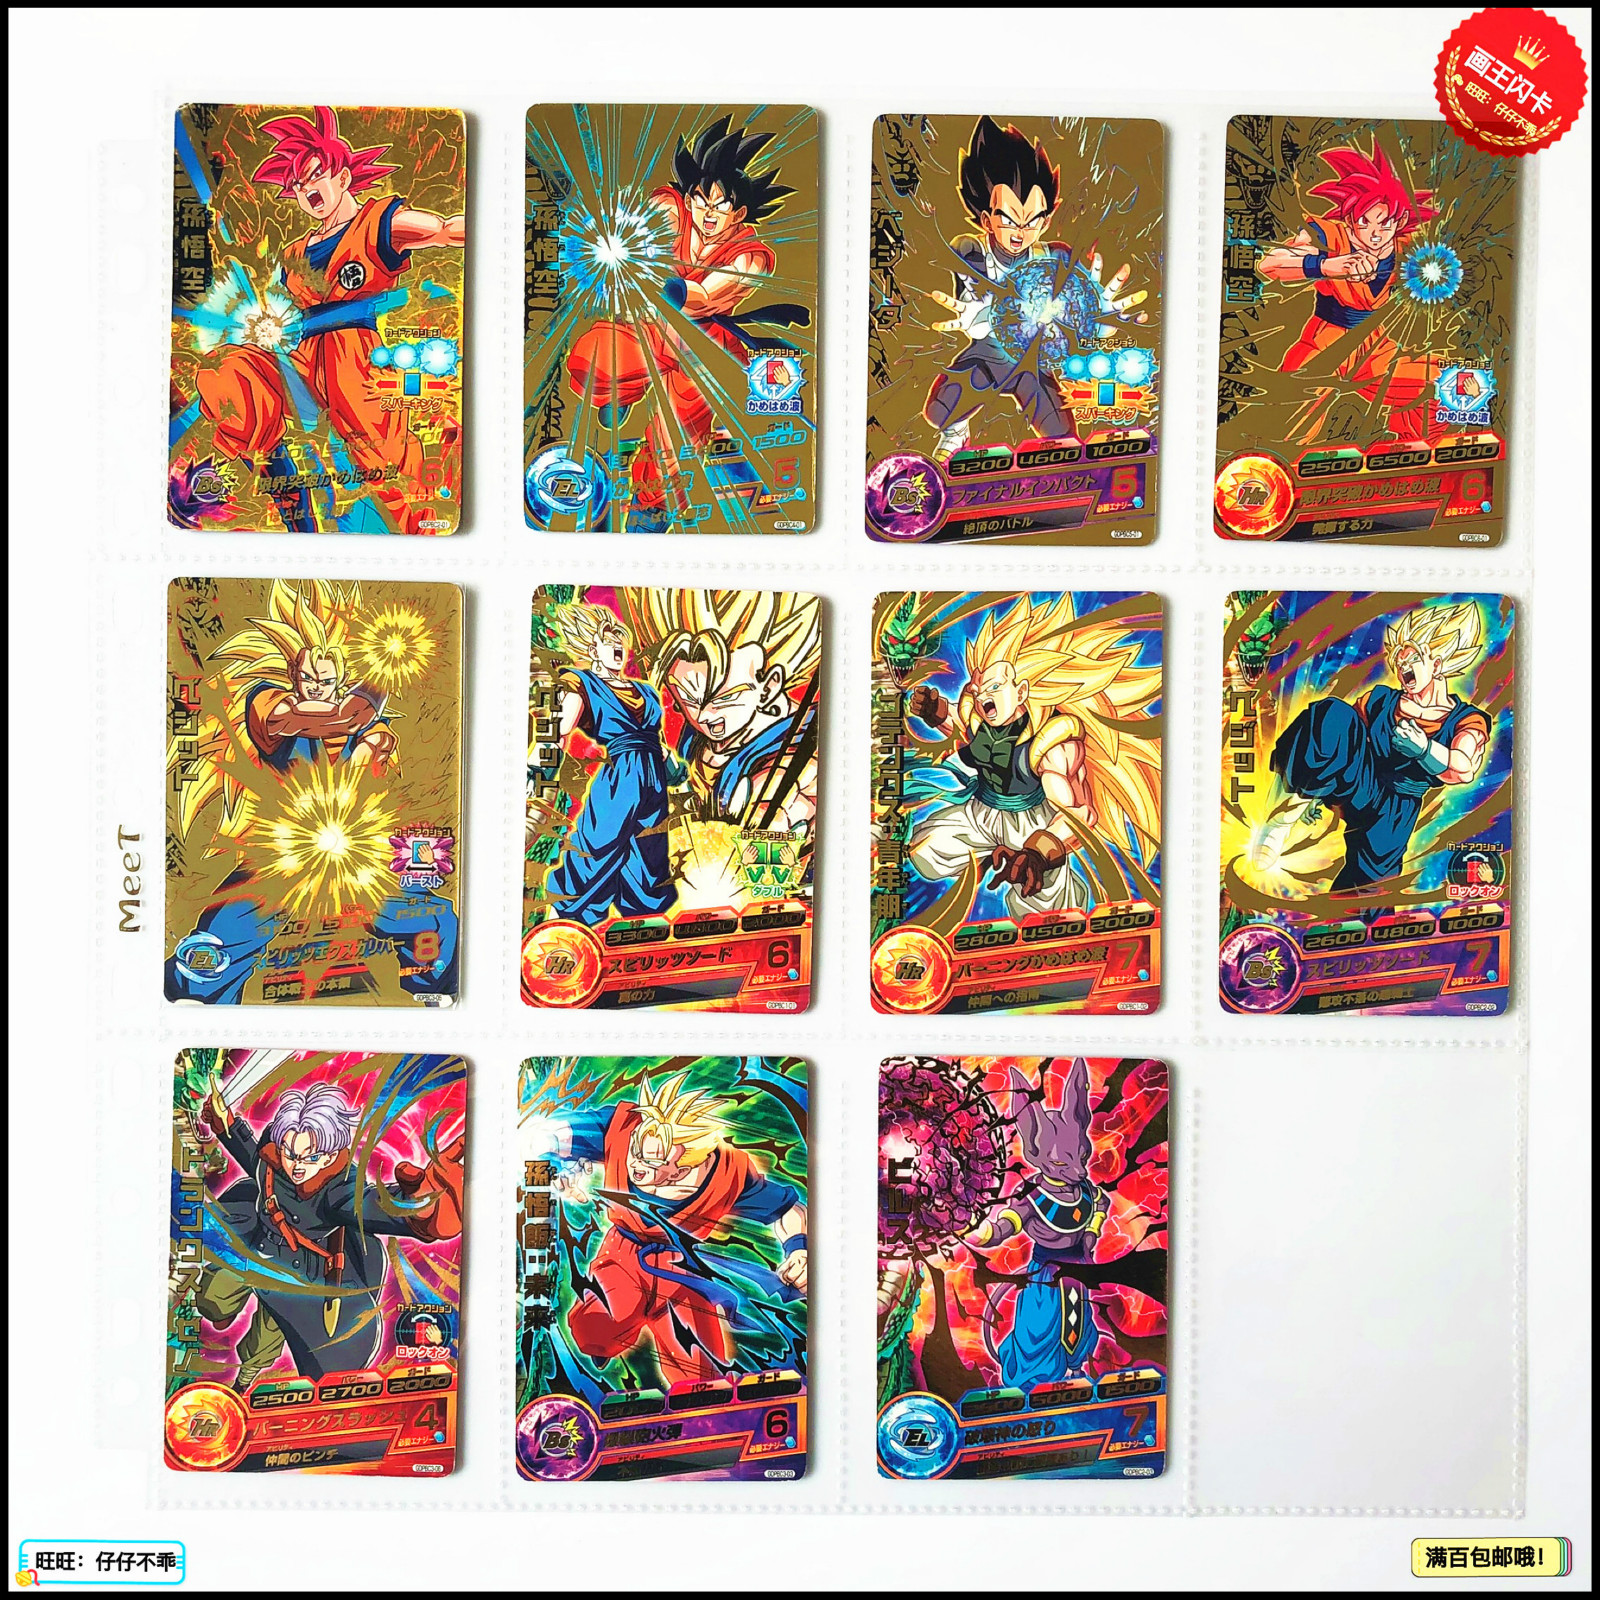 Japan Original Dragon Ball Hero GDPBC 1 2 3 God Super Saiyan Goku Toys Hobbies Collectibles Game Collection Anime Cards